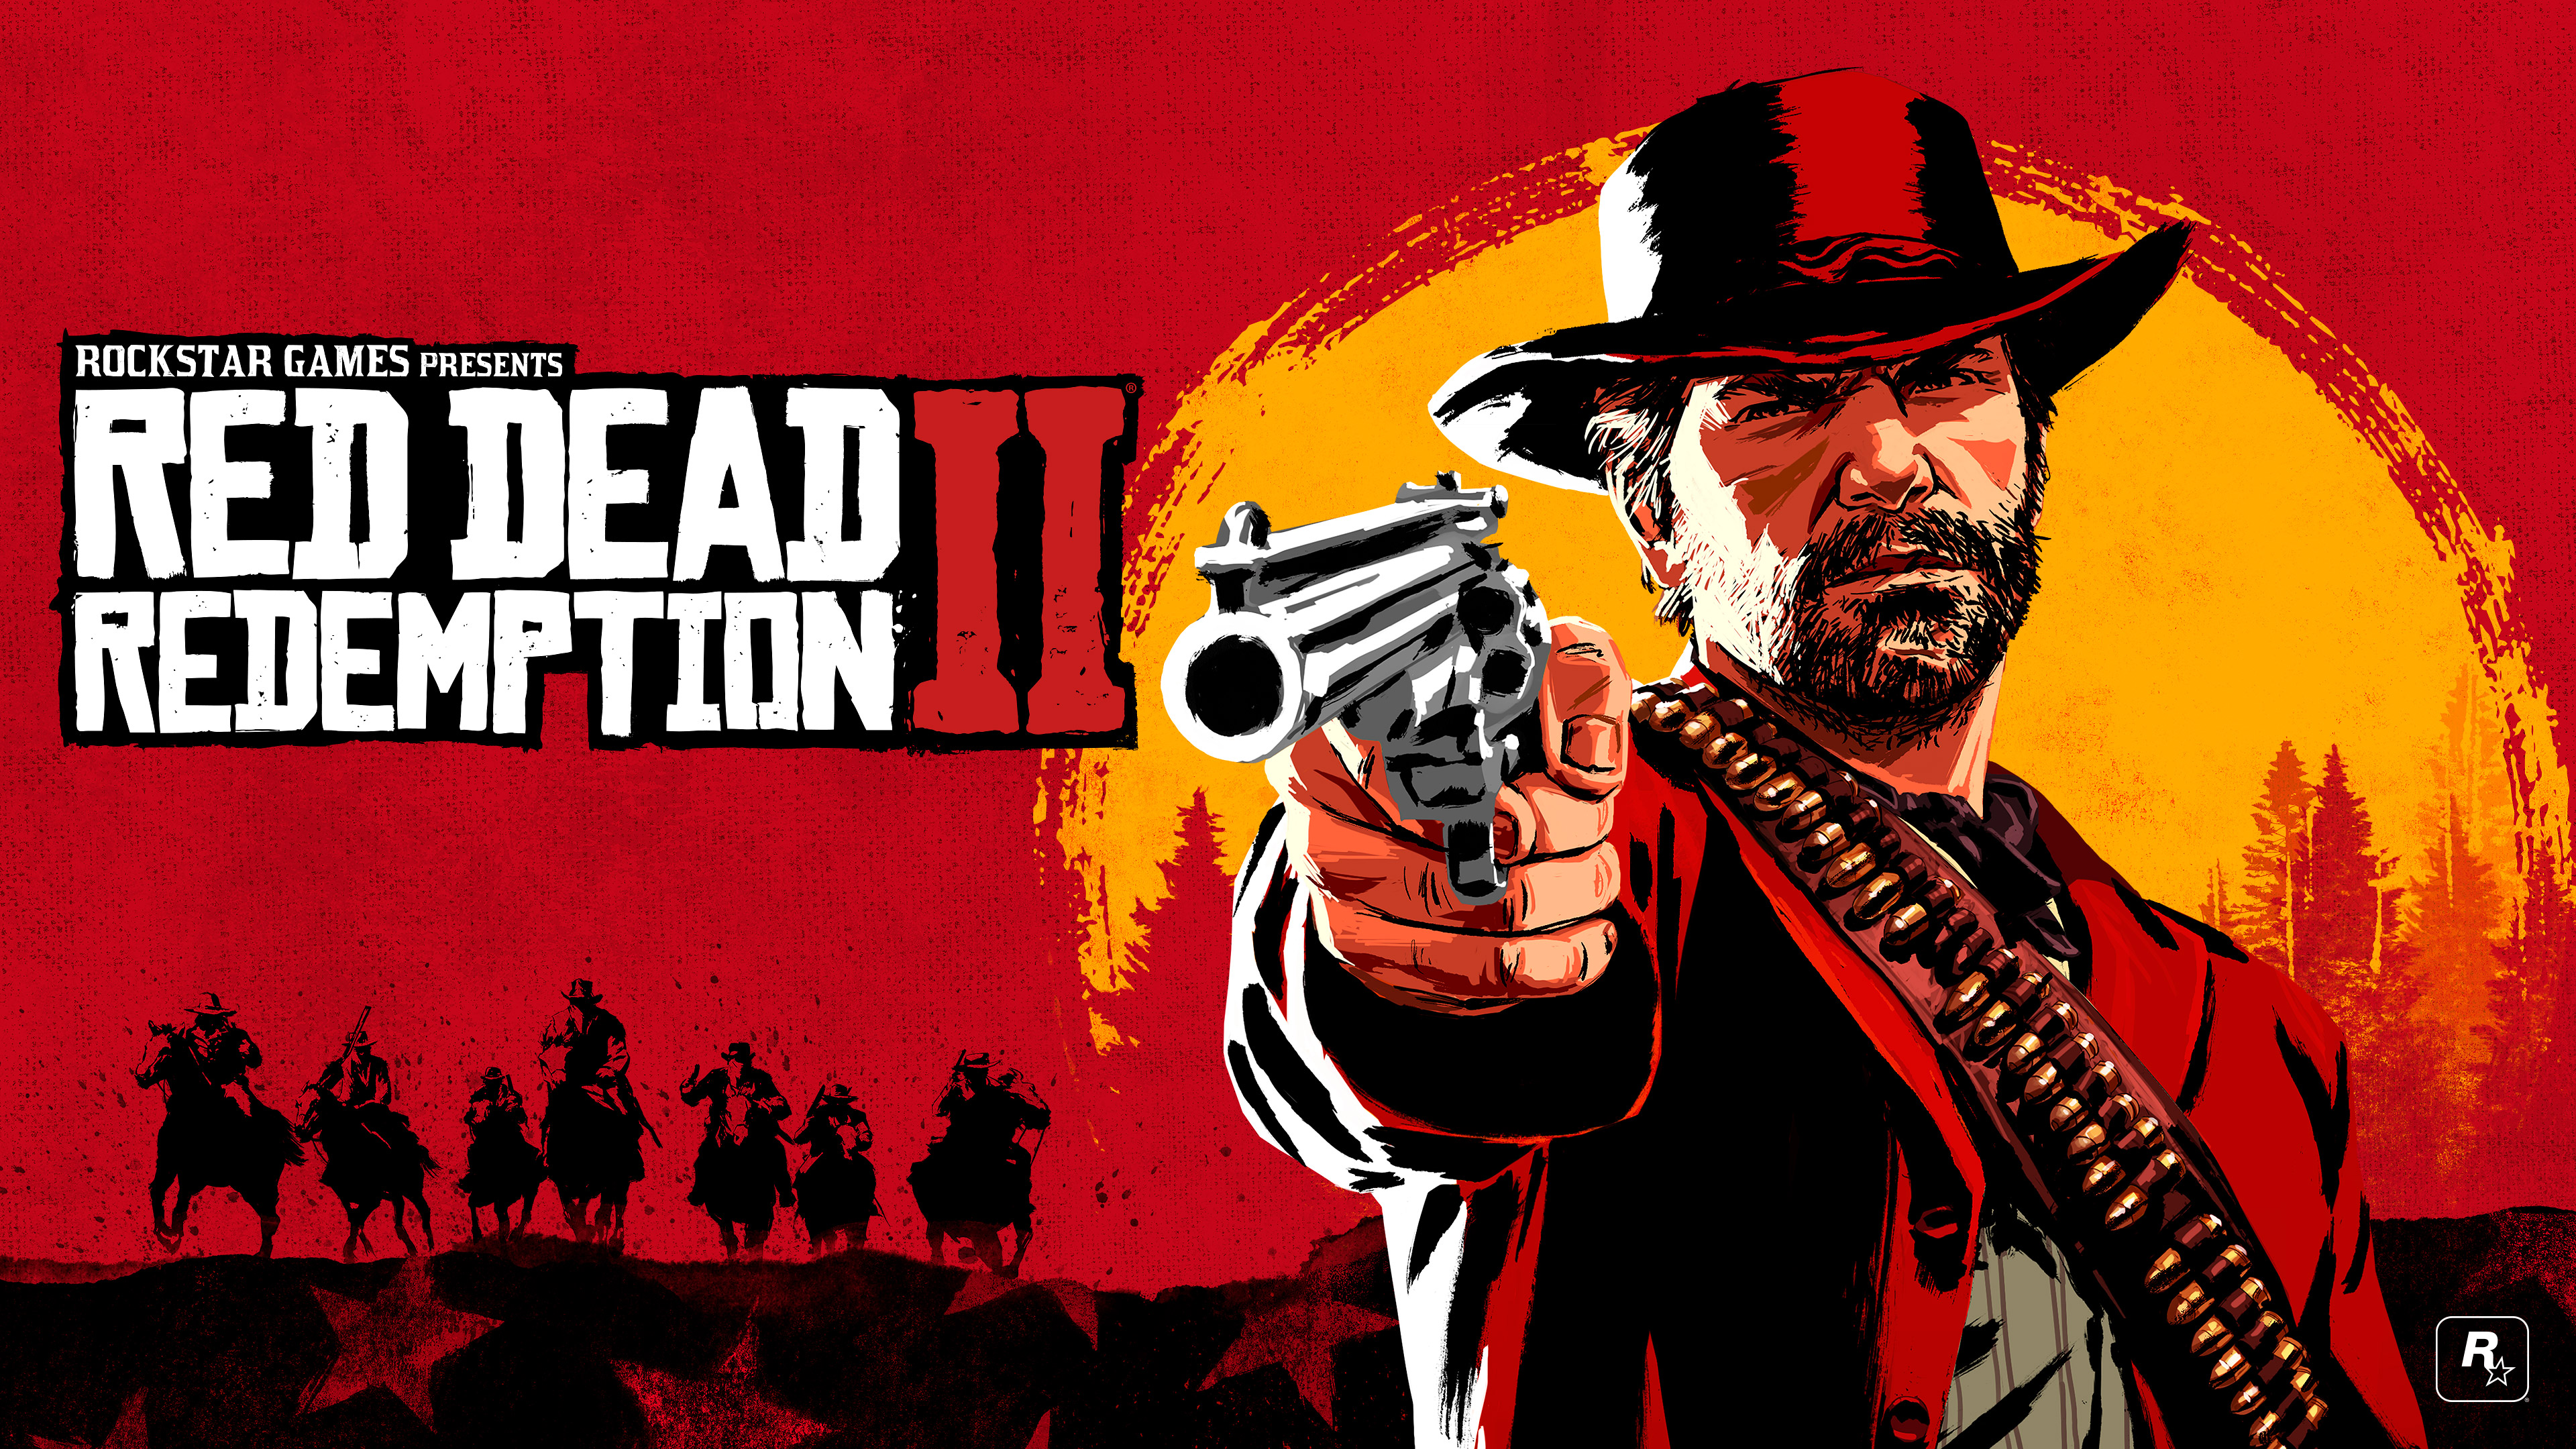 https://media.rockstargames.com/rockstargames-newsite/img/global/downloads/wallpapers/games/rdr2_officialart_3840x2160.jpg